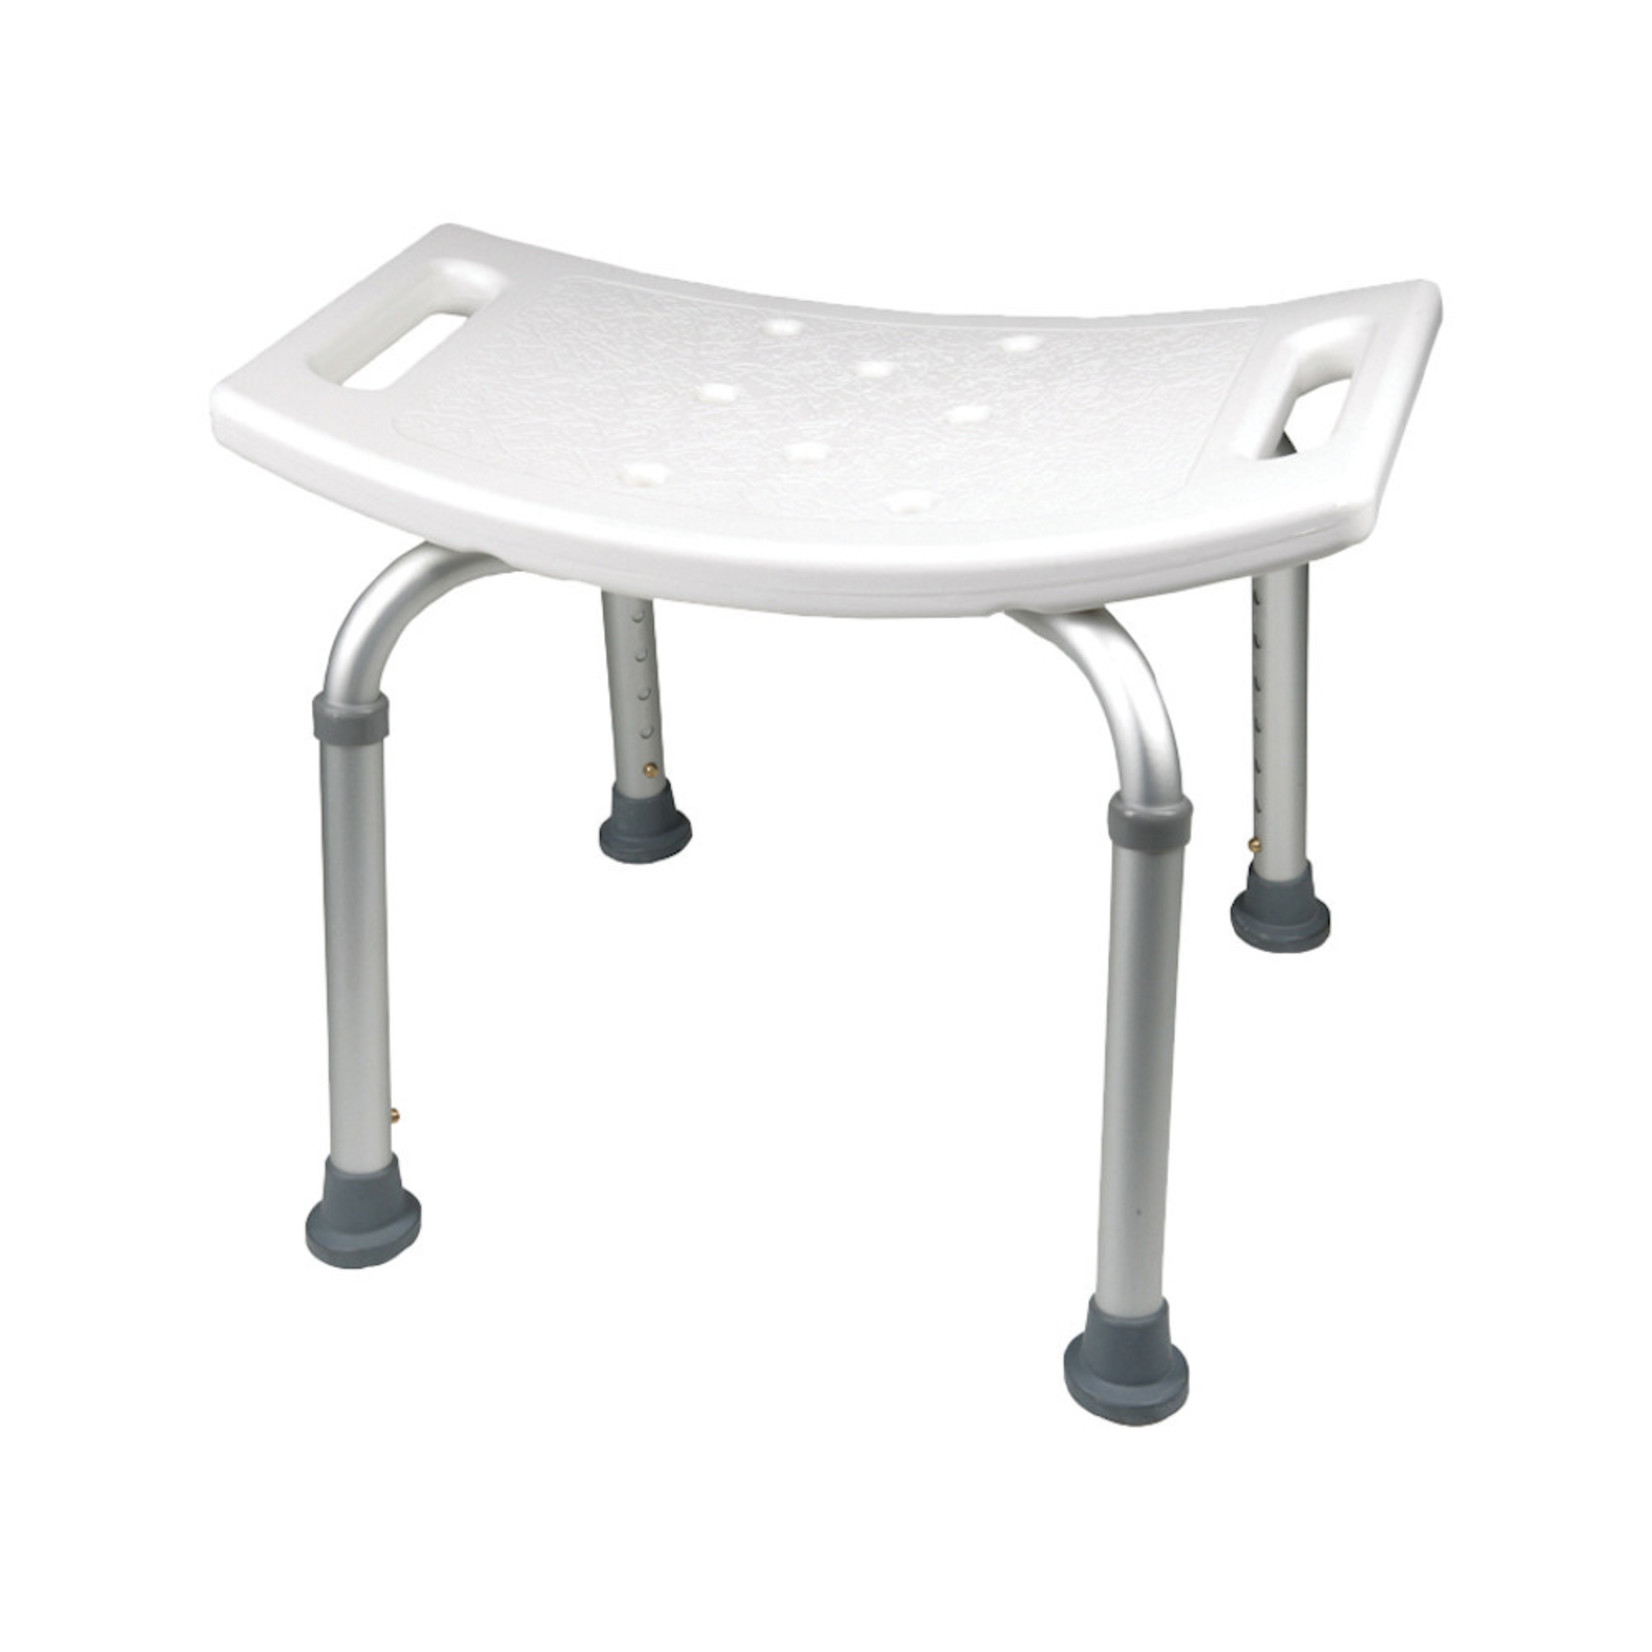 Probasics Shower Chair - No Back, No Arms